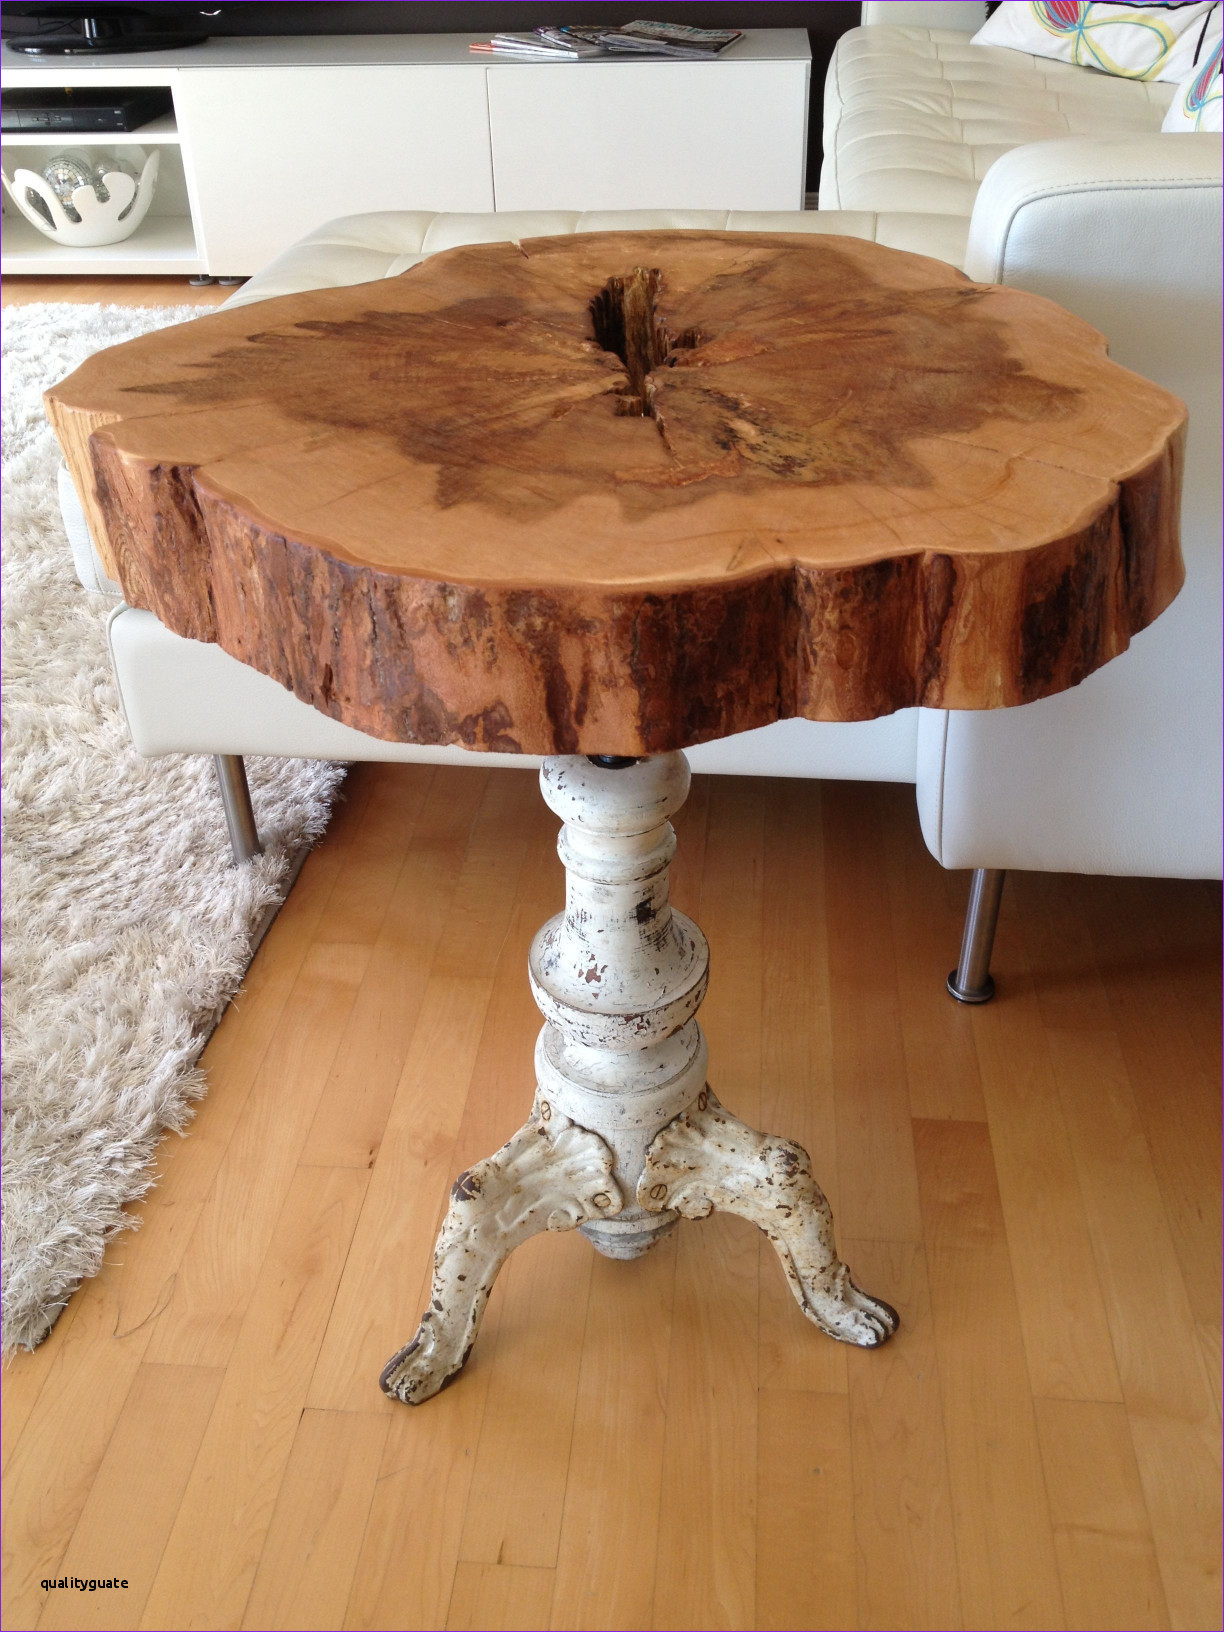 mm hardwood flooring of tables fancy tree trunk table fresh tree trunk table lamp best wood with tables fancy tree trunk table fresh tree trunk table lamp best wood tables 0d